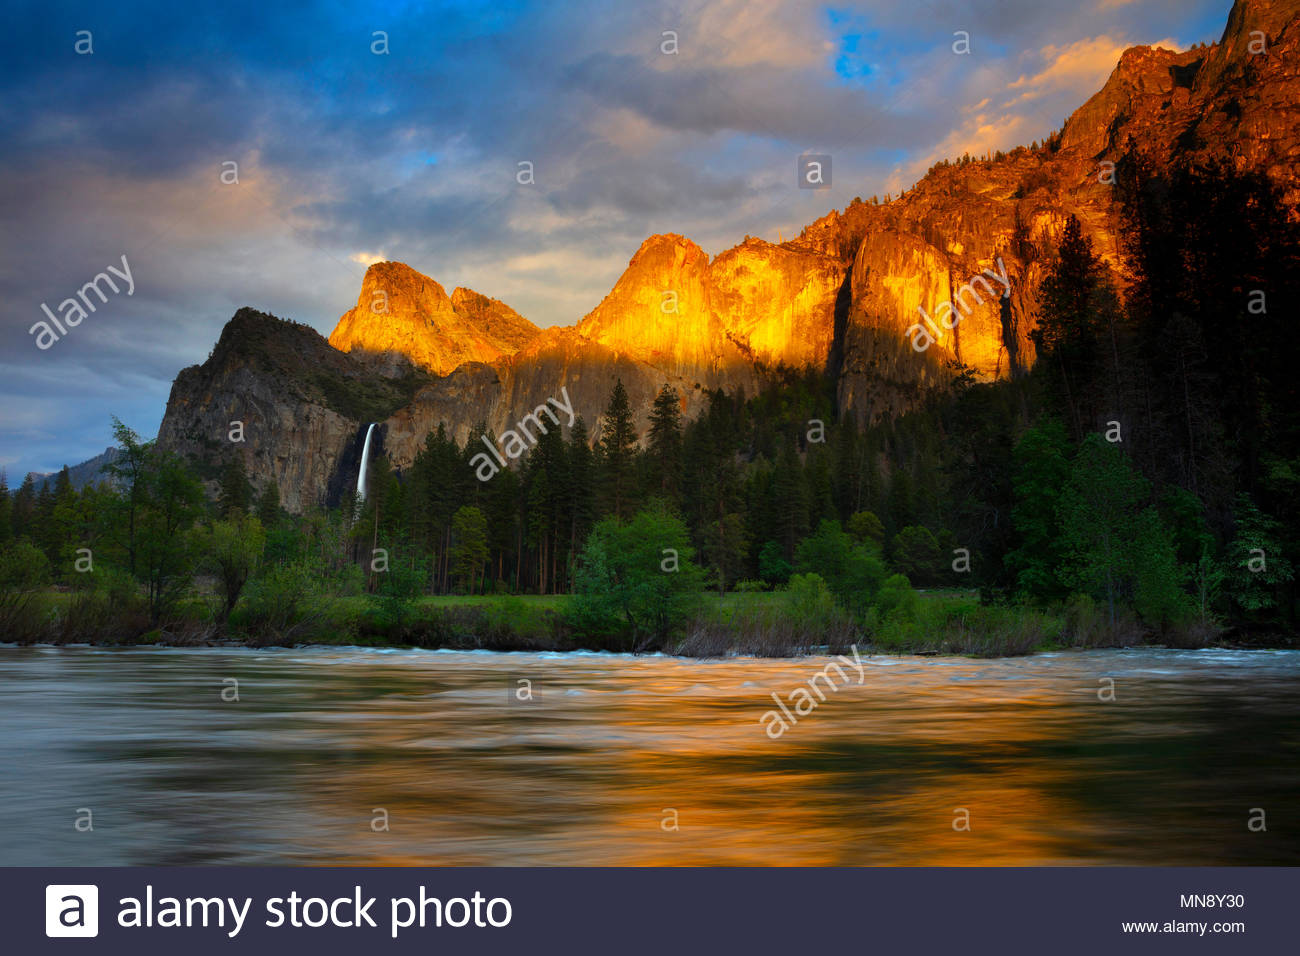 La lumière dorée du soleil couchant se reflète sur plusieurs pics de Yosemite, y compris la Tour penchée et Dewey Point, sur la rivière Merced au Valley View en Y Photo Stock